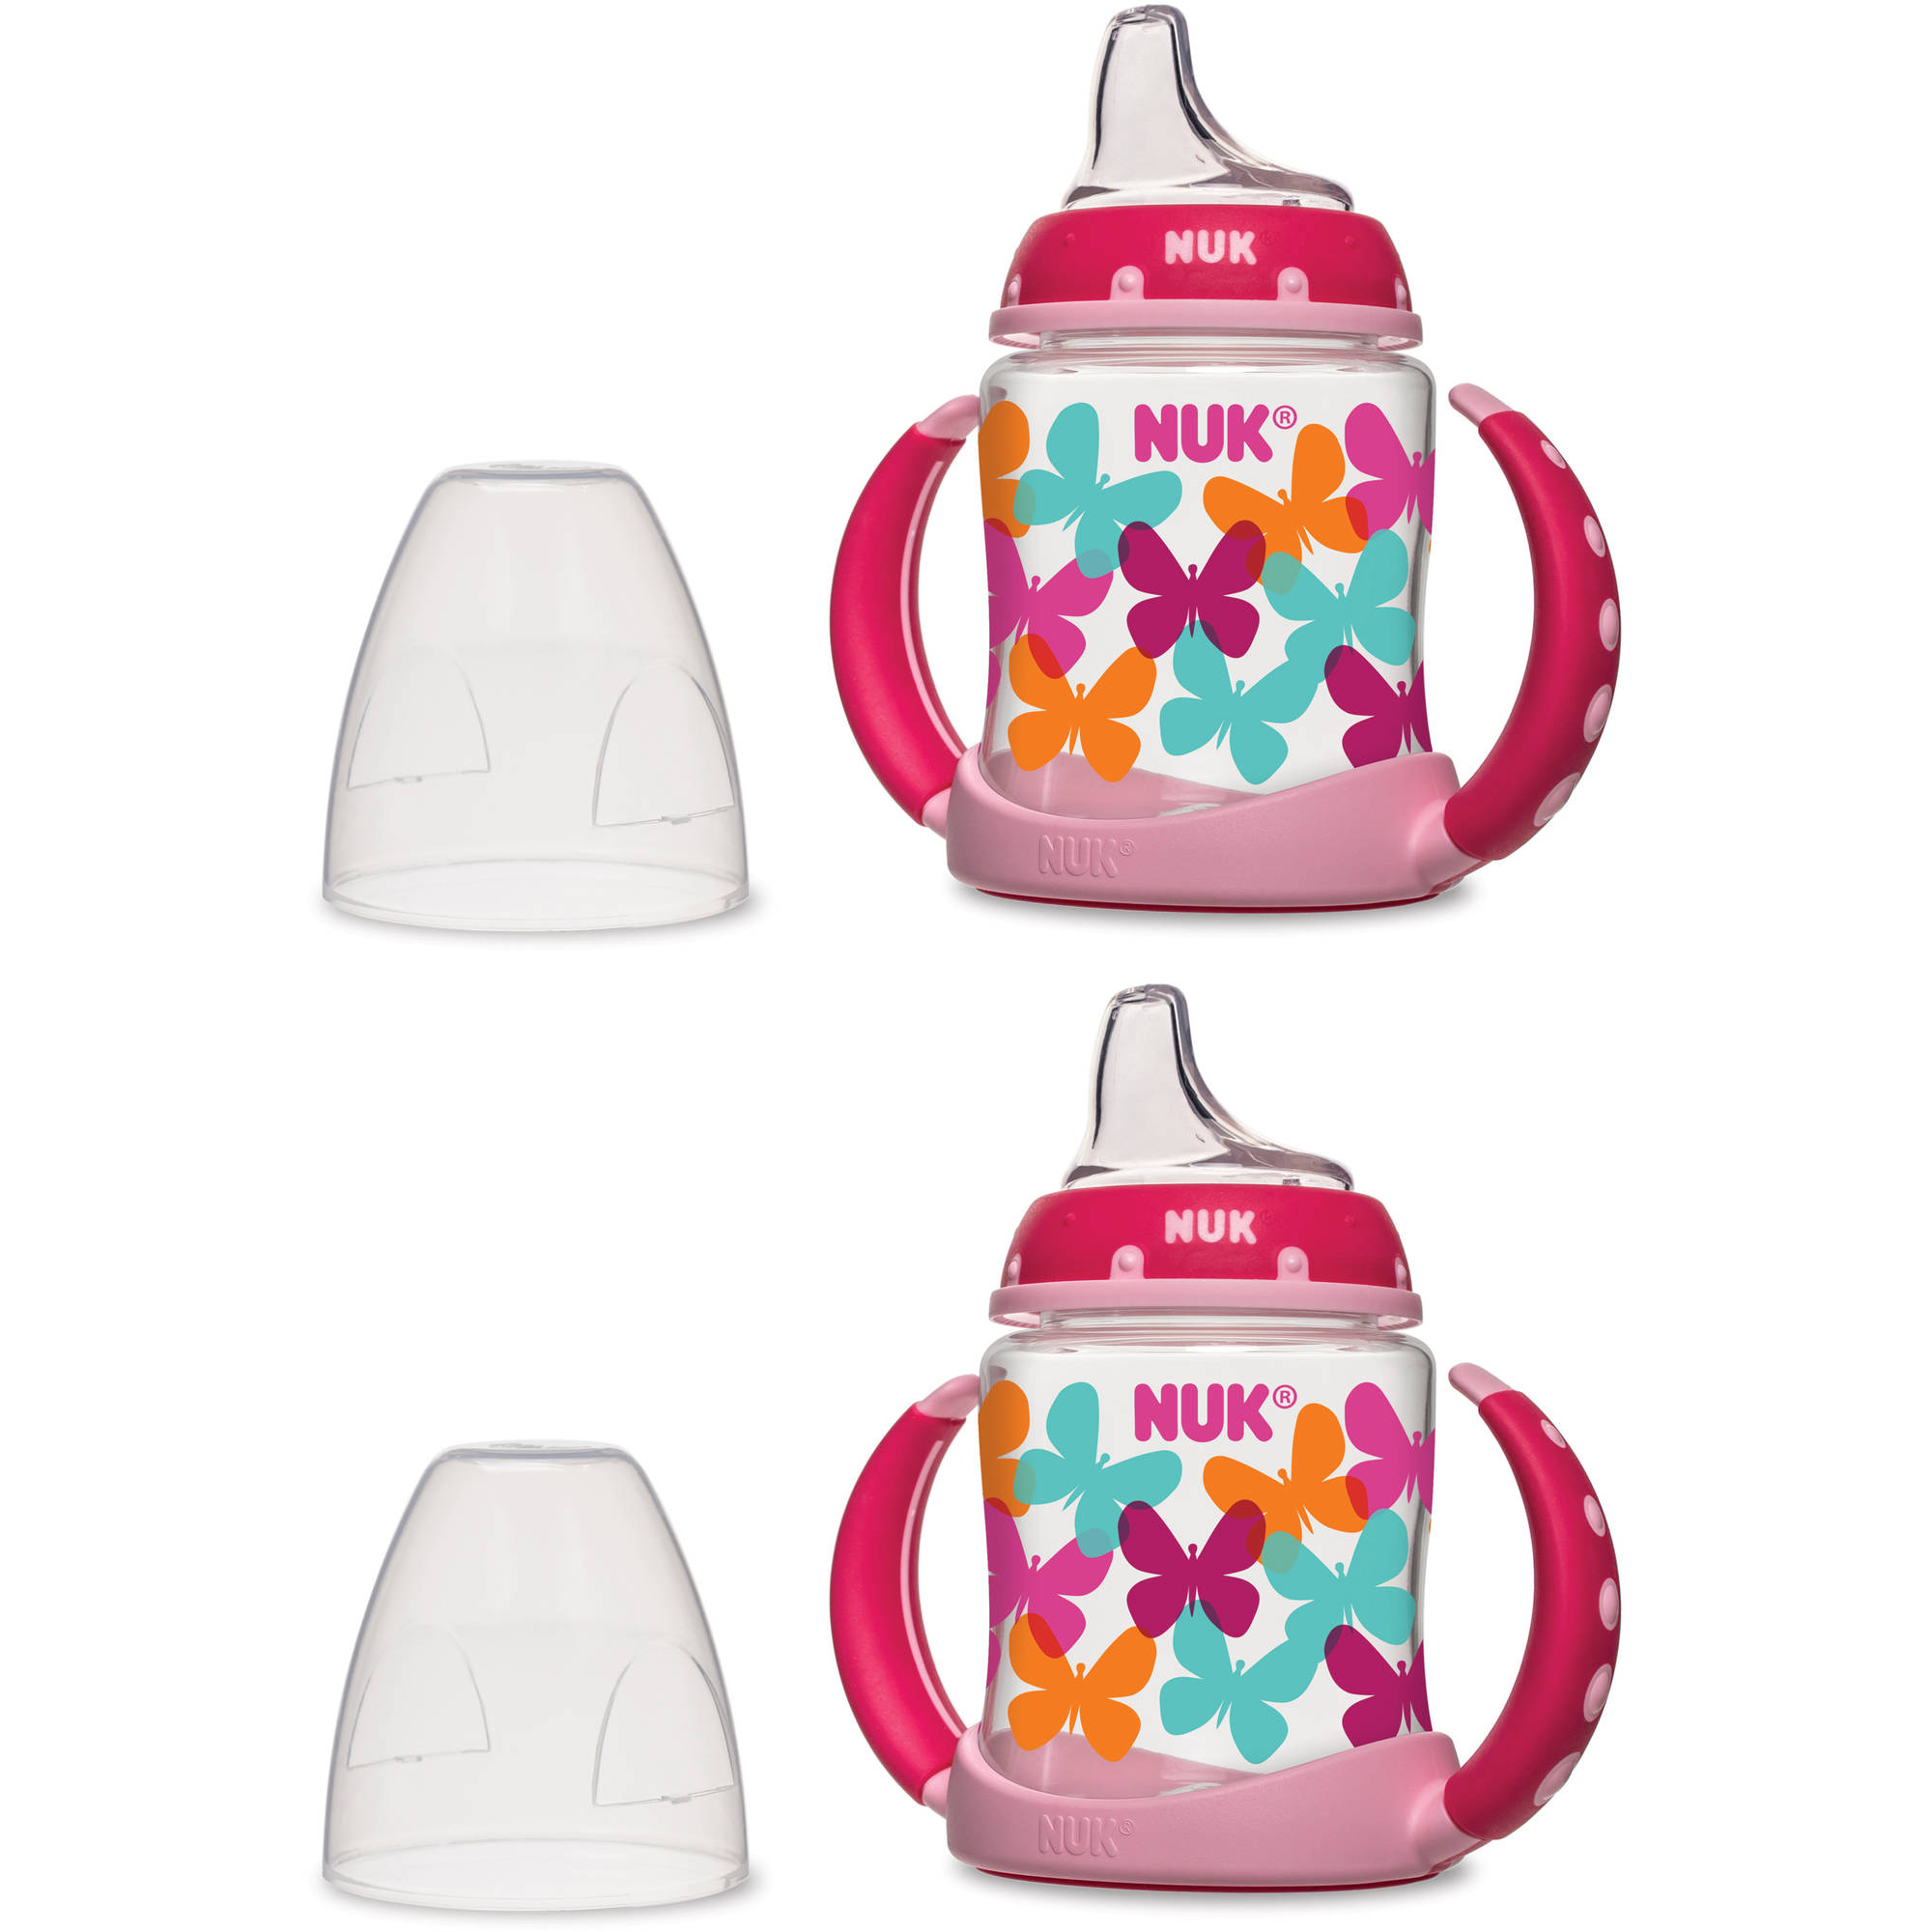 NUK 5-oz Learner Cup, Silicone Spout, Fashion Girl Designs, BPA-Free